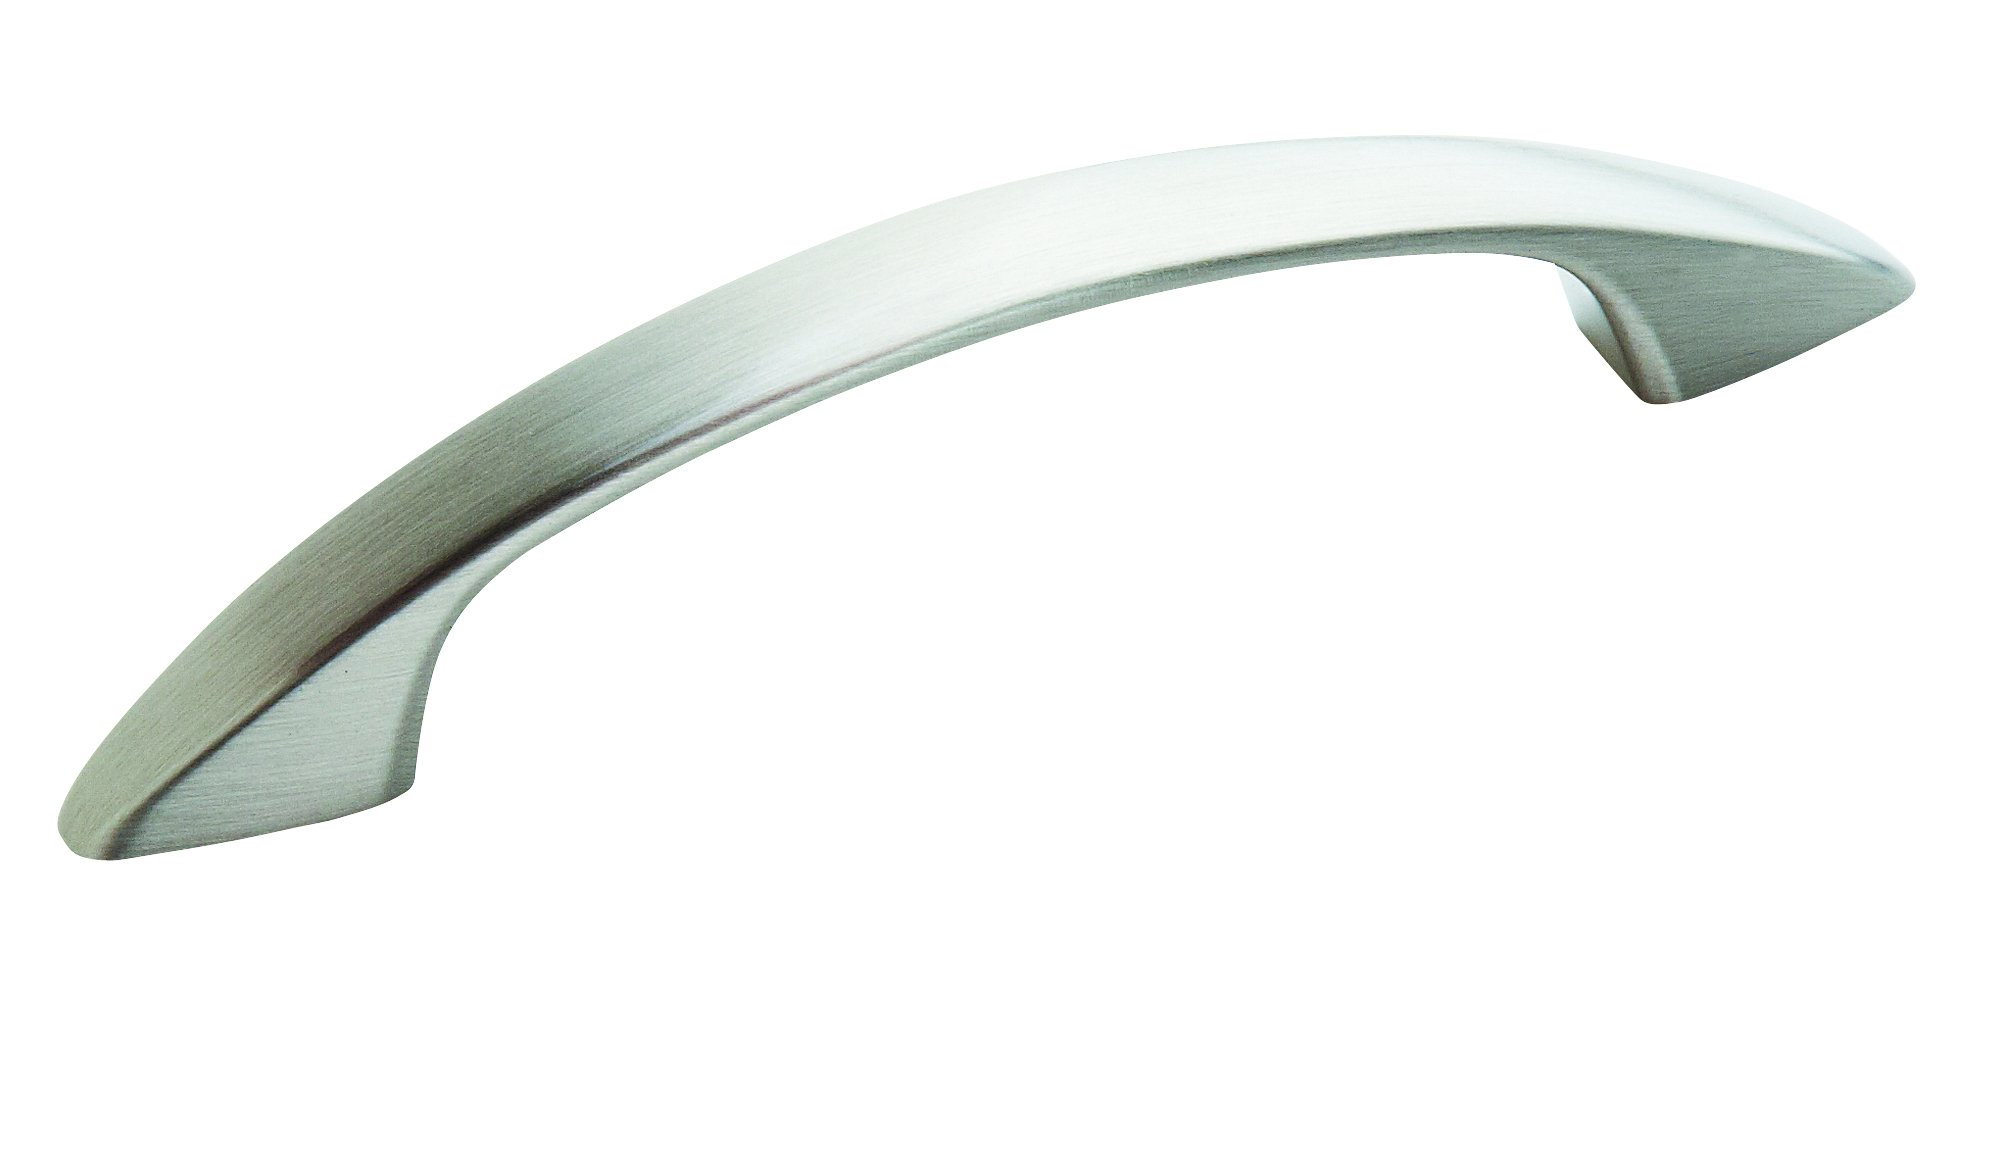 Allison Value 3 in. (76 mm) Center-to-Center Satin Nickel Cabinet Pull - 25 Pack